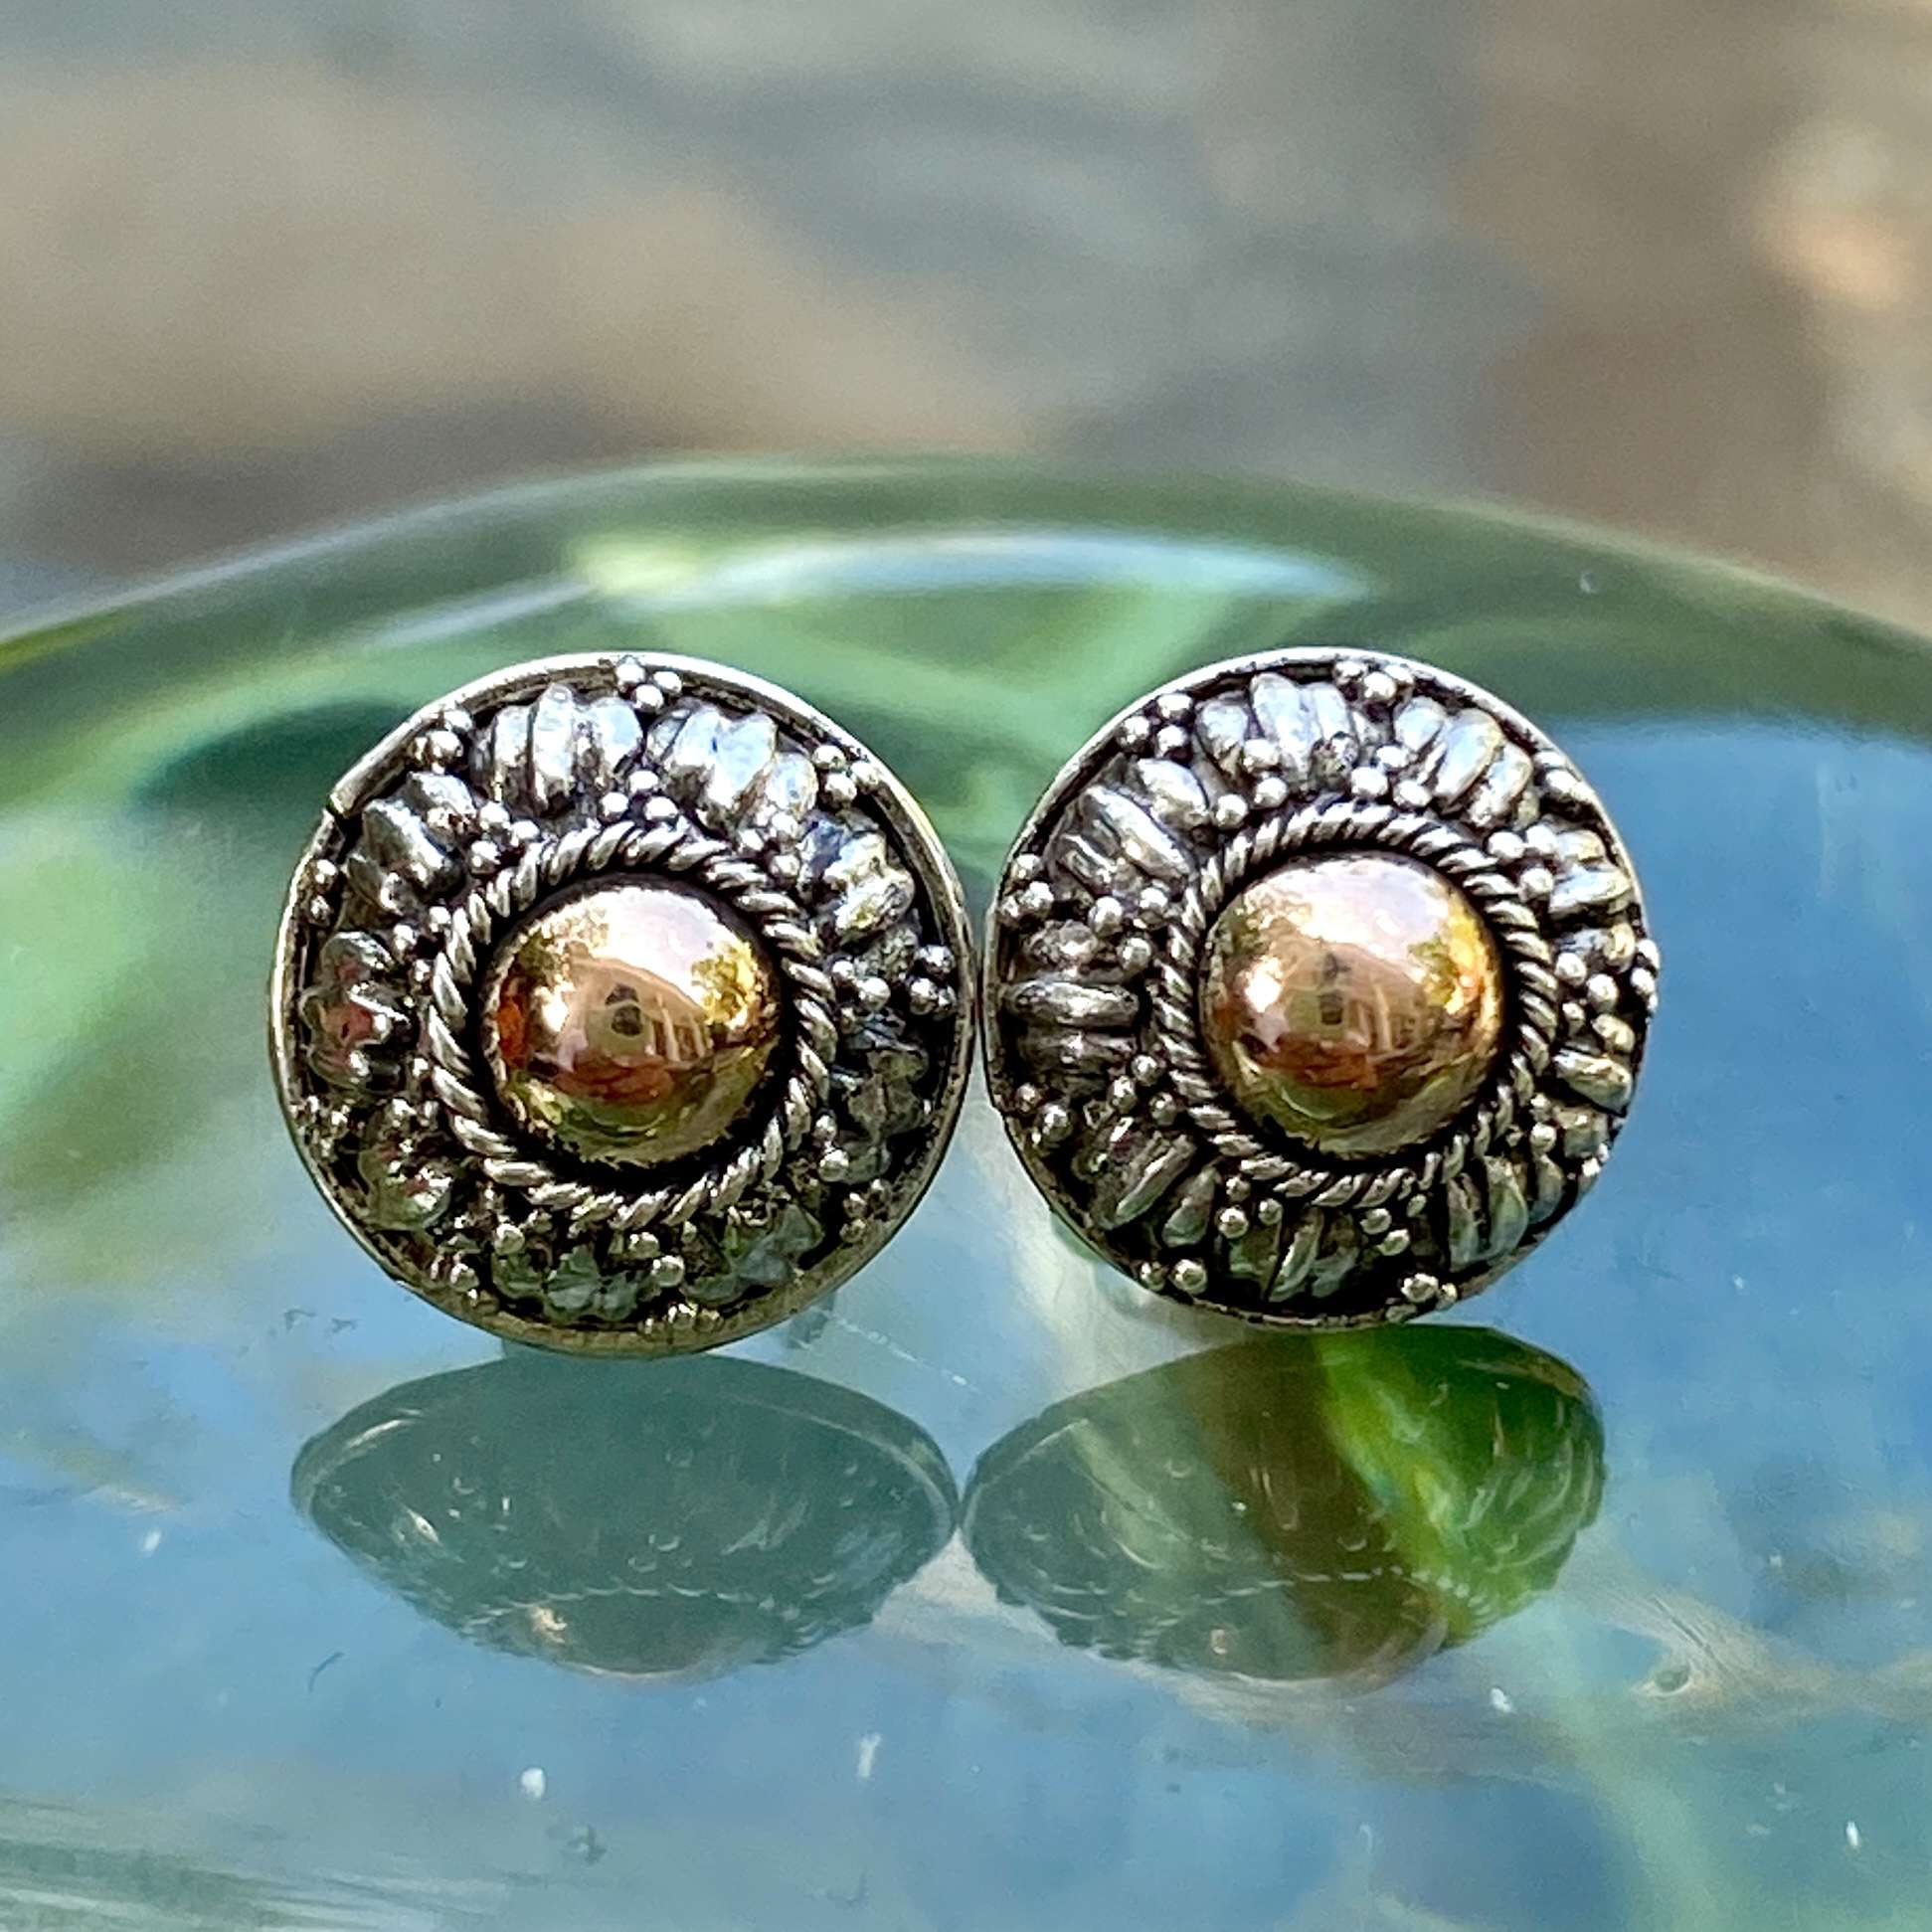 (HANDMADE 925 BALI SILVER EARRINGS WITH 18KT GOLD ACCENT)